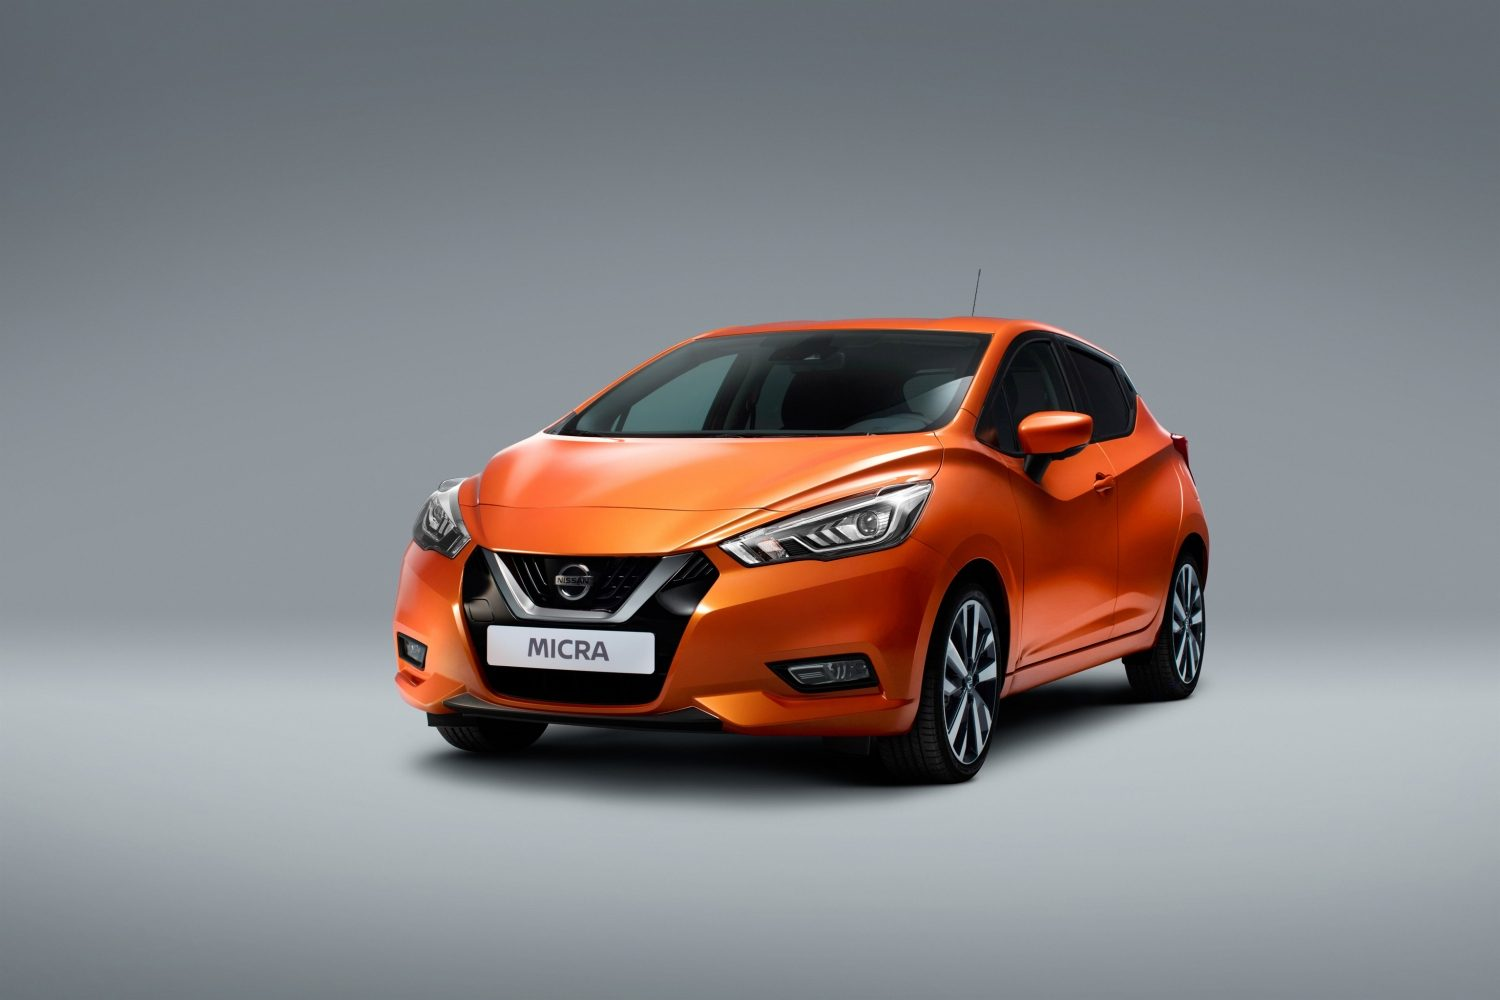 Nissan taps into social networking to pioneer world's first digitally powered shared car ownership scheme